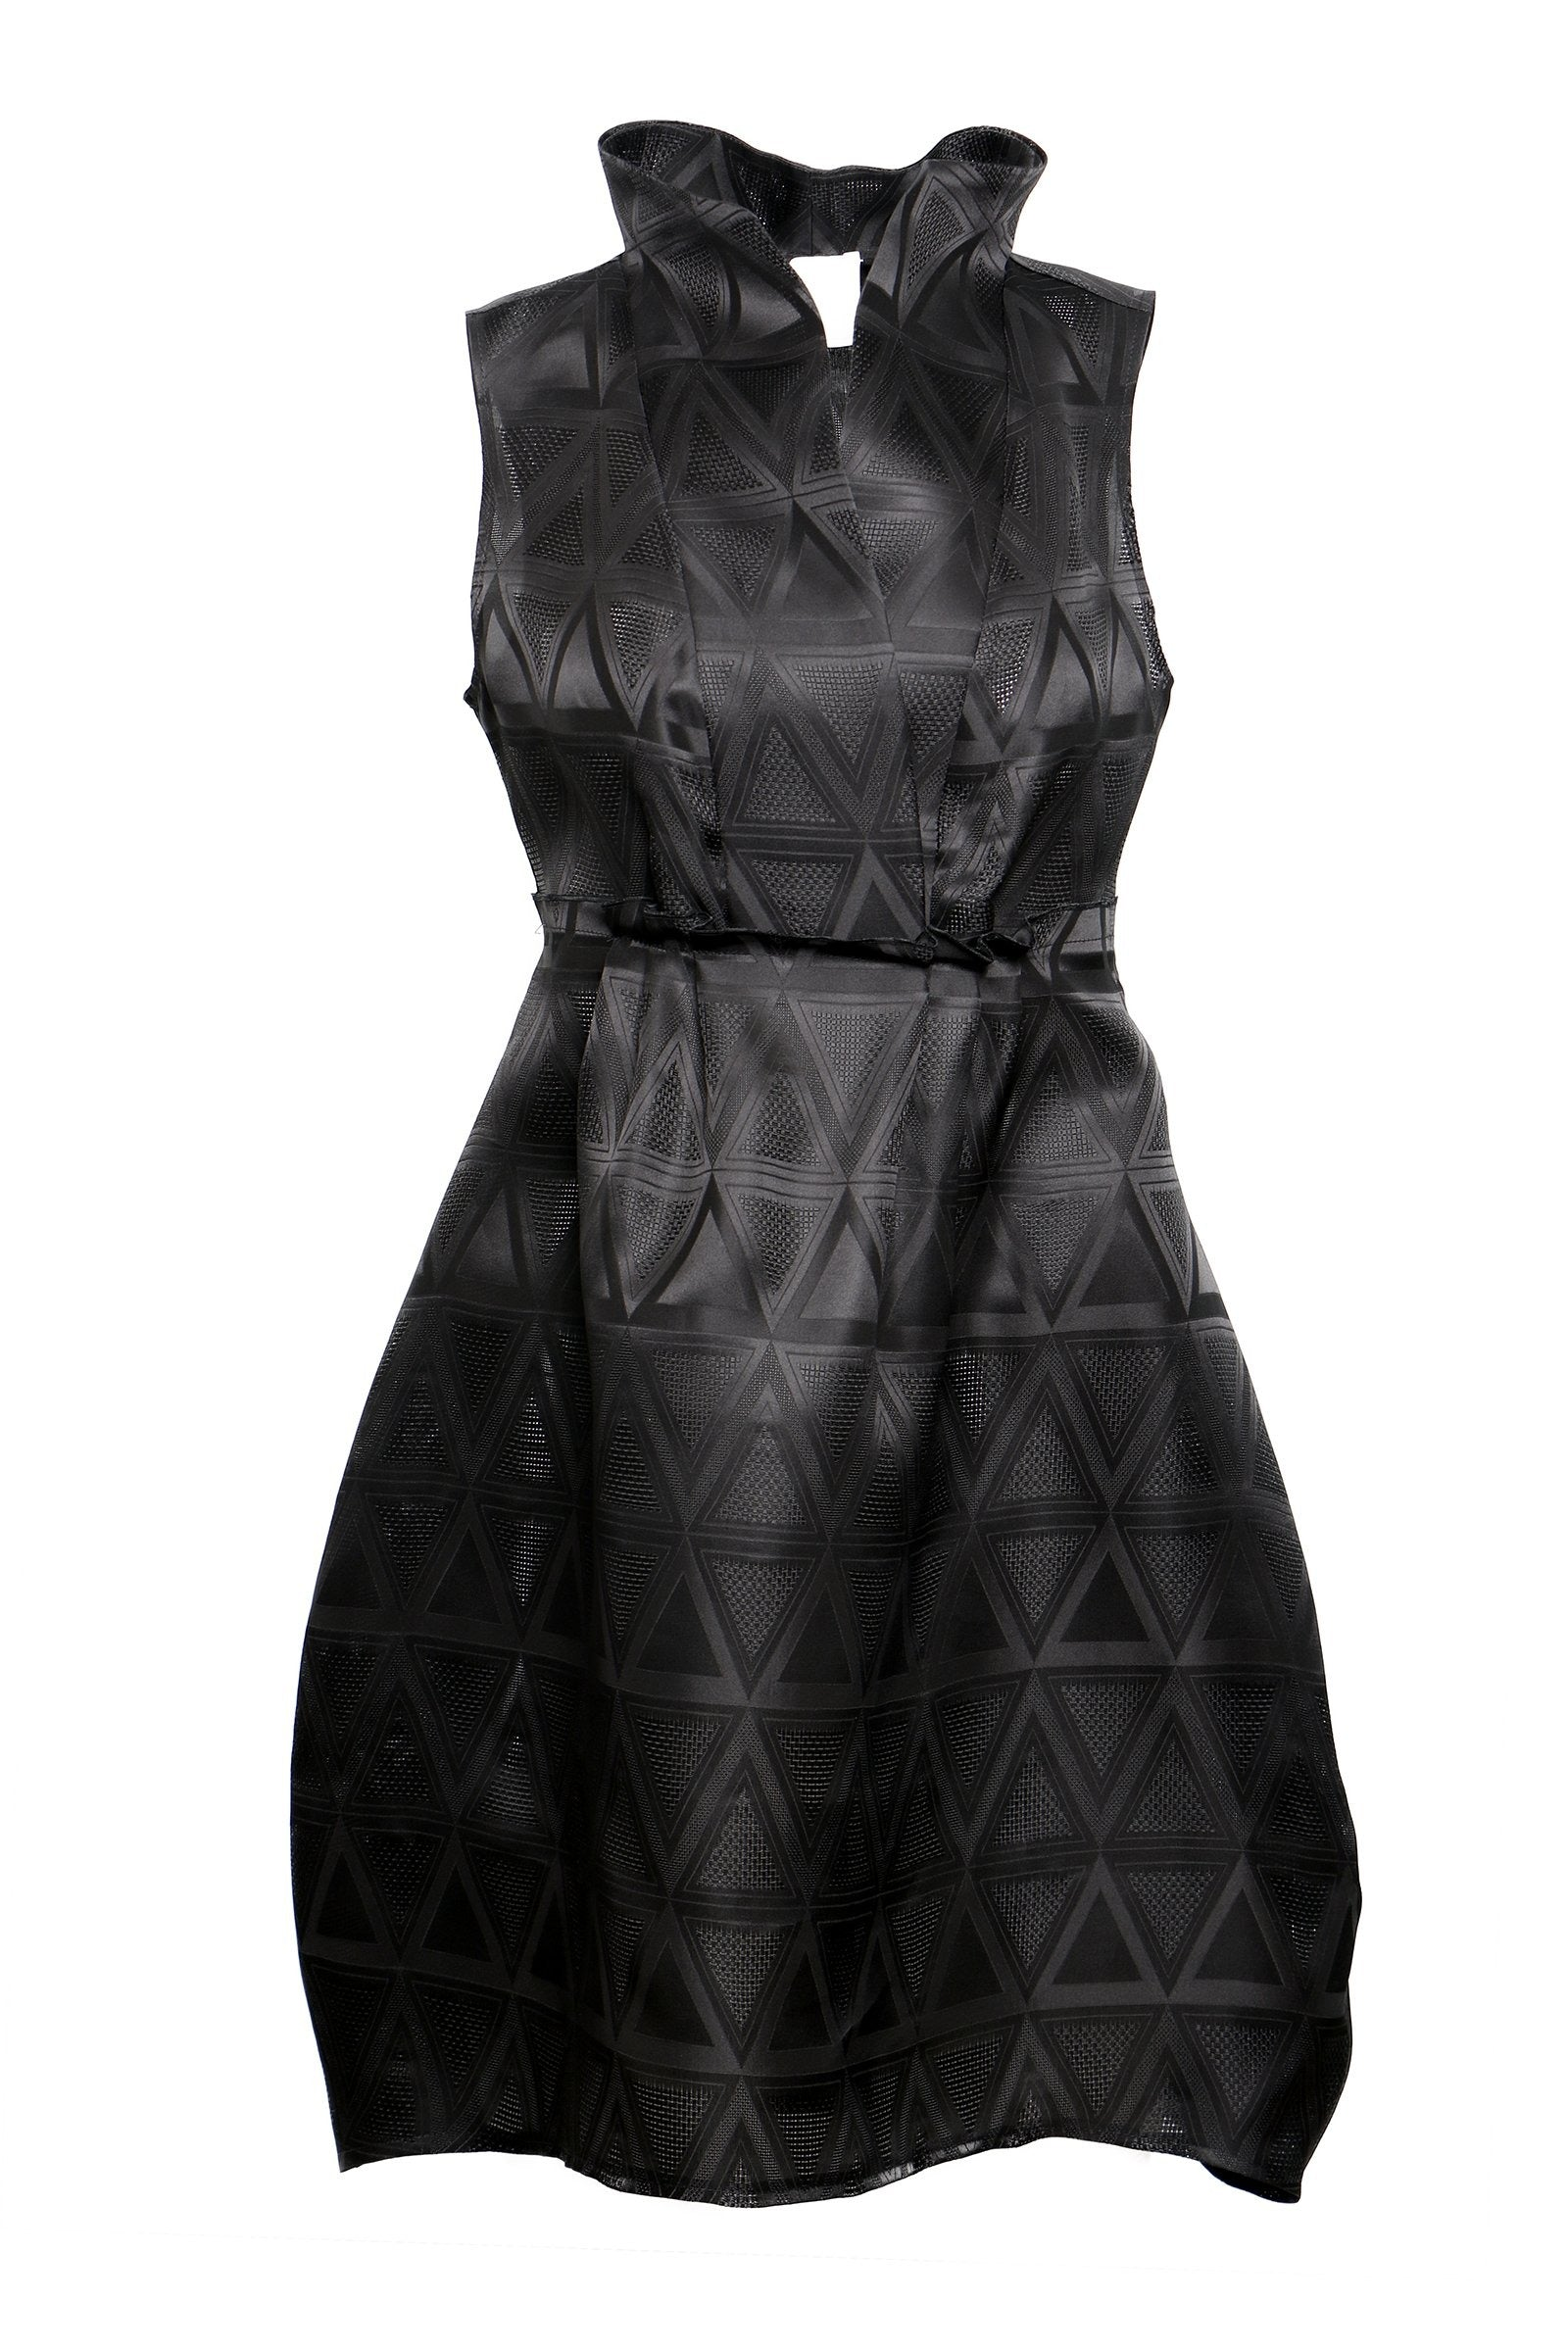 Jacquard Silk Dress - The Bobby Boga